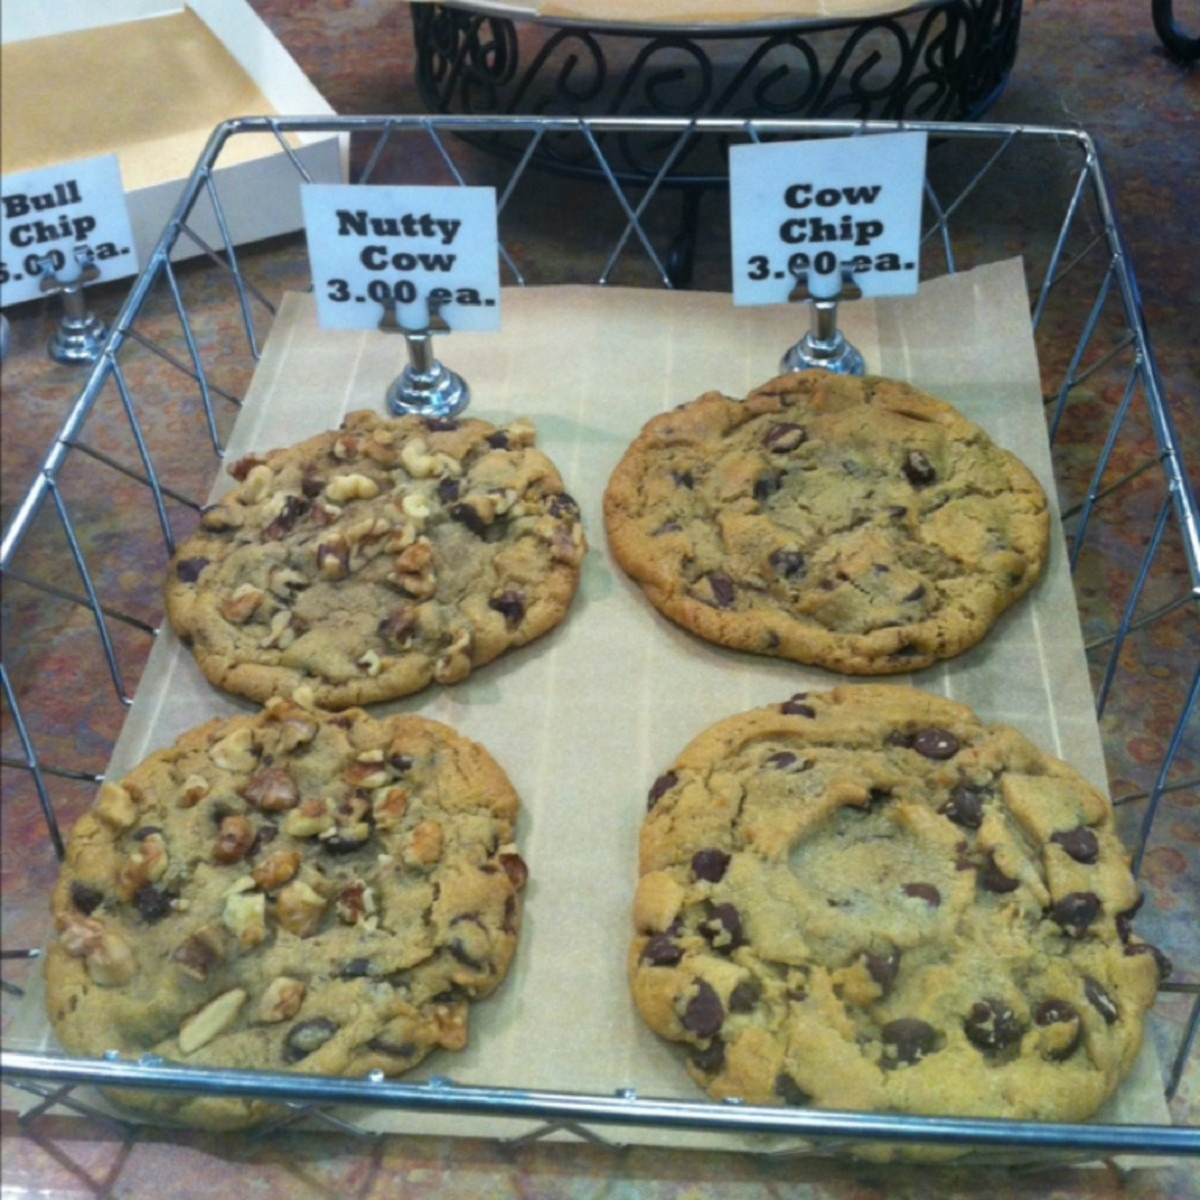 Cow Chip Cookies, Seattle, Washington